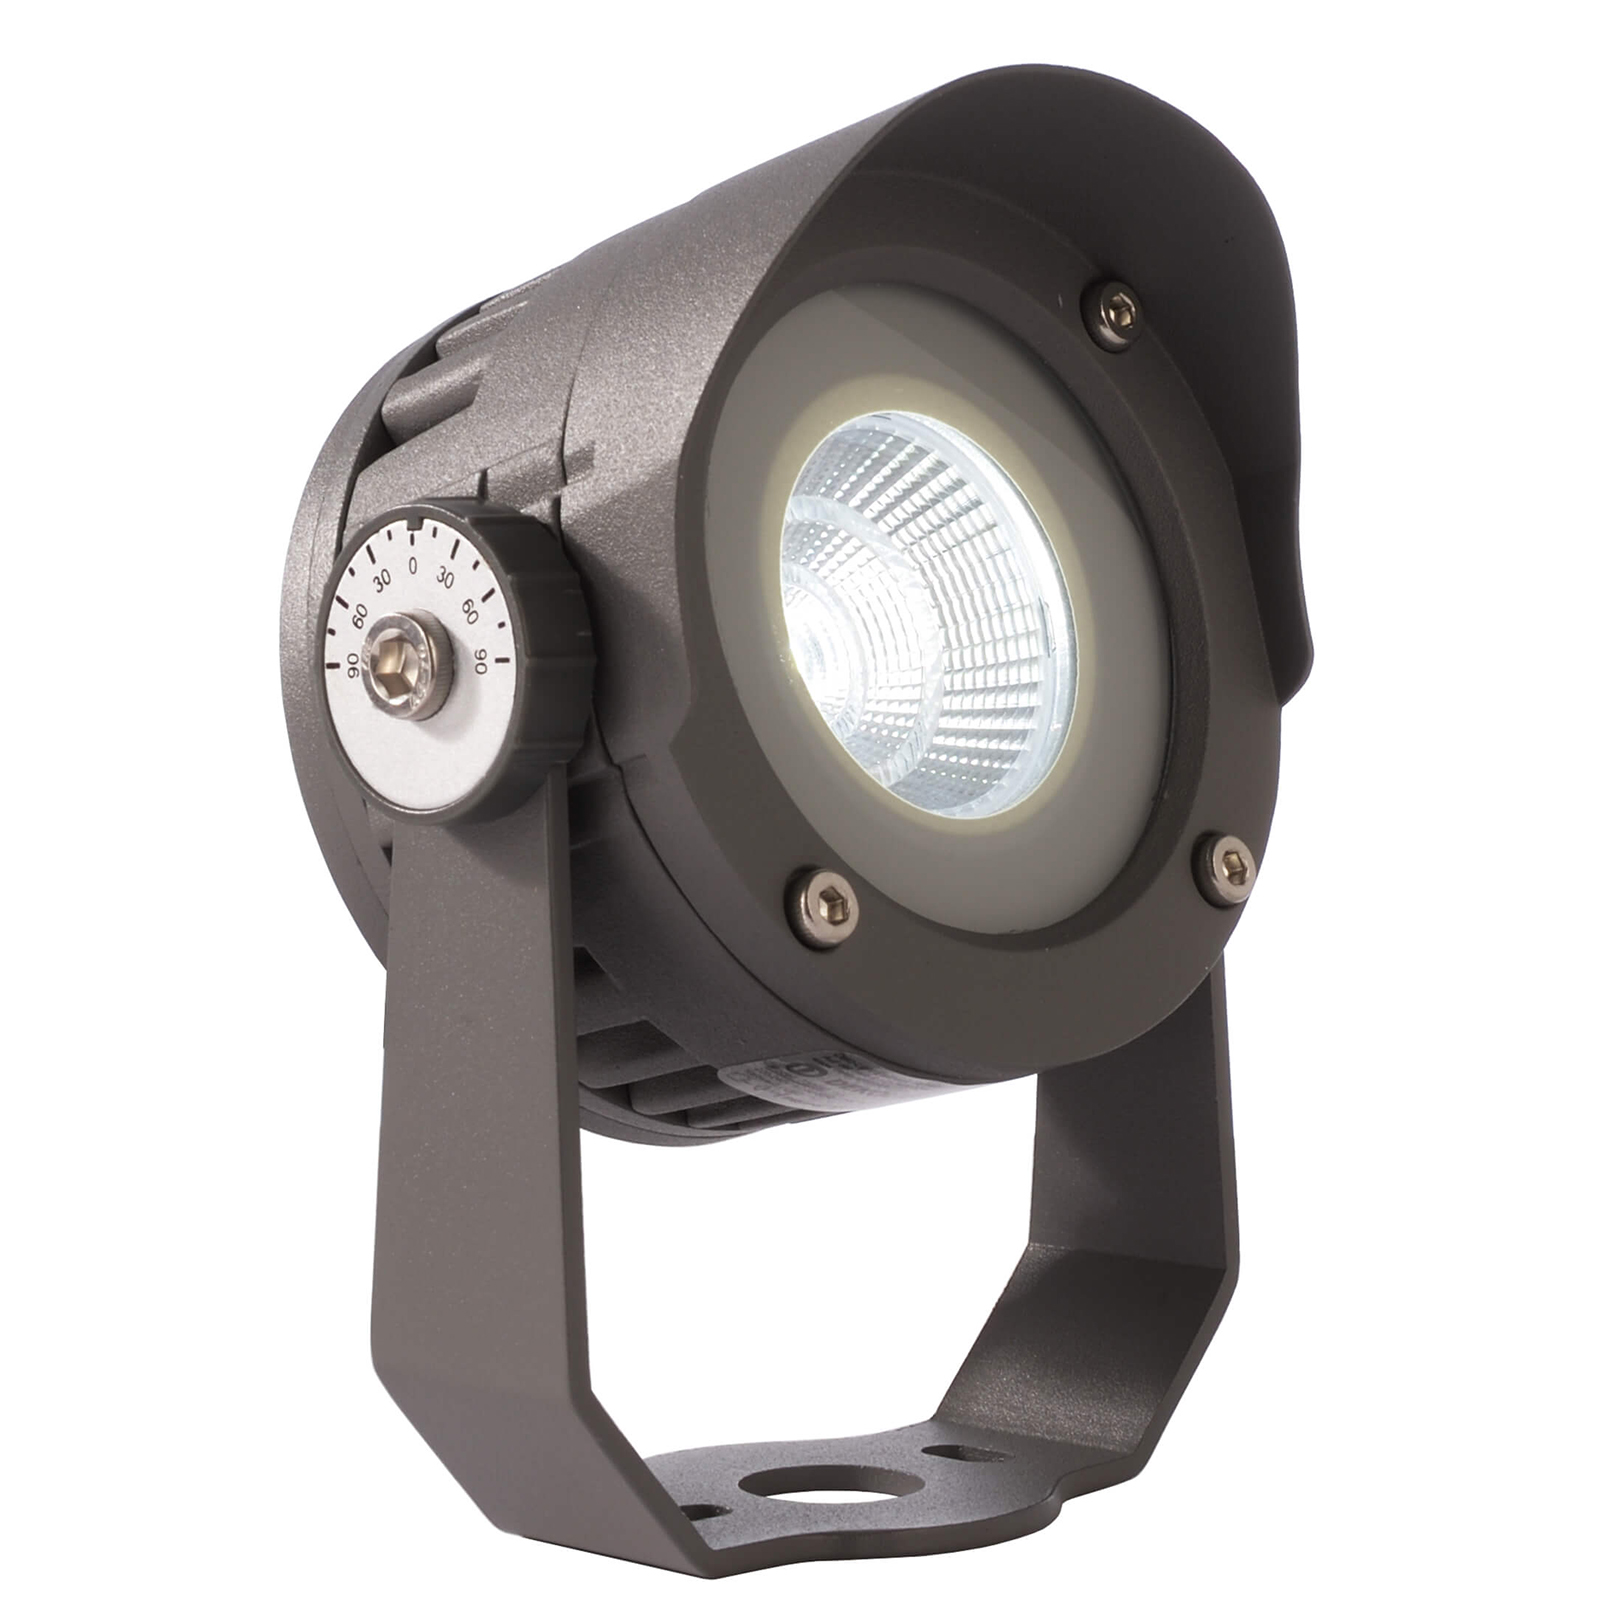 Outdoor spotlight LED 7W headlight spot adjustable IP65 garden light plants tables